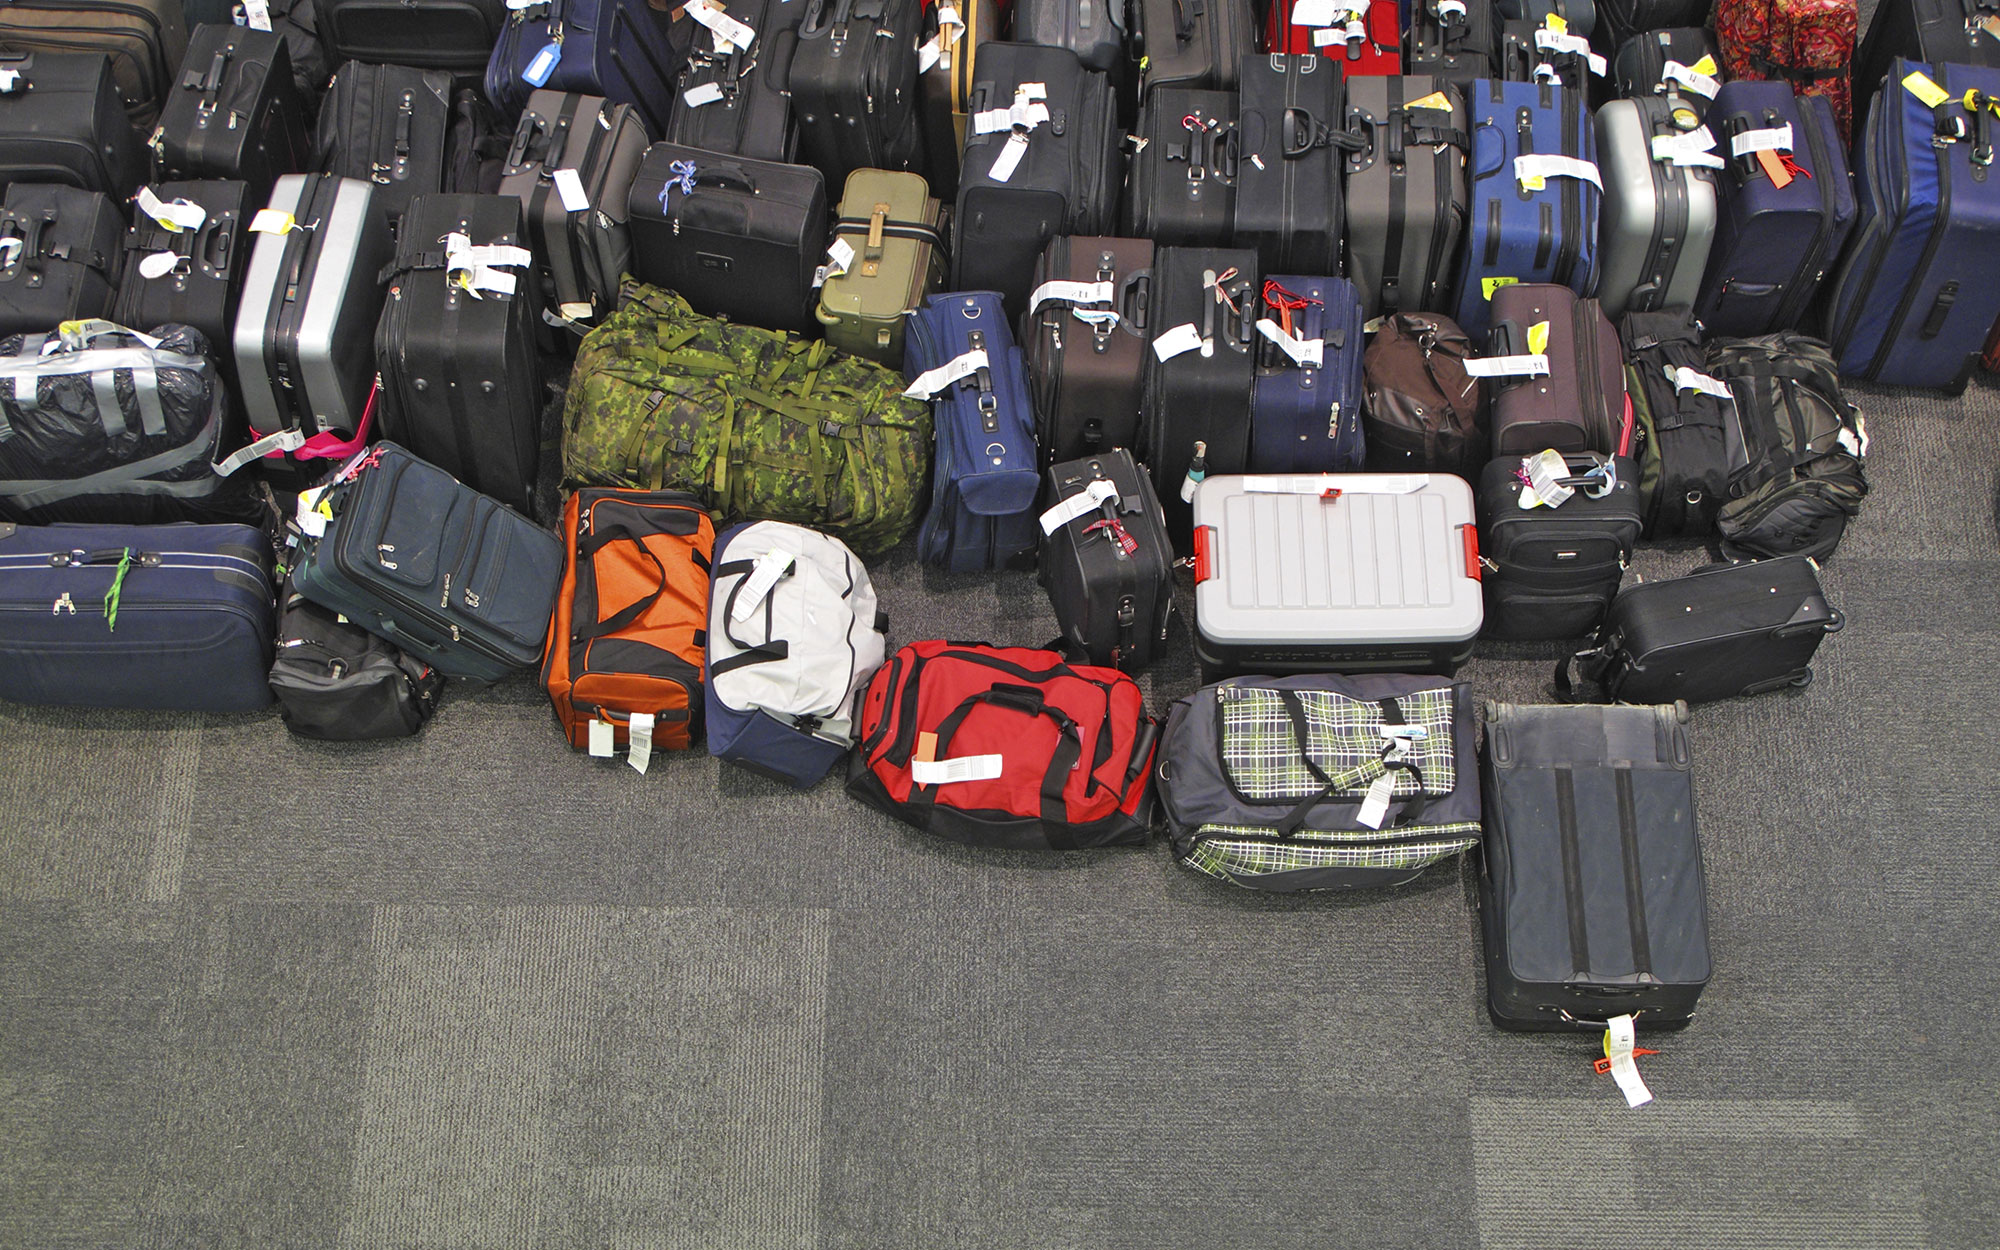 Lost luggage in the airport